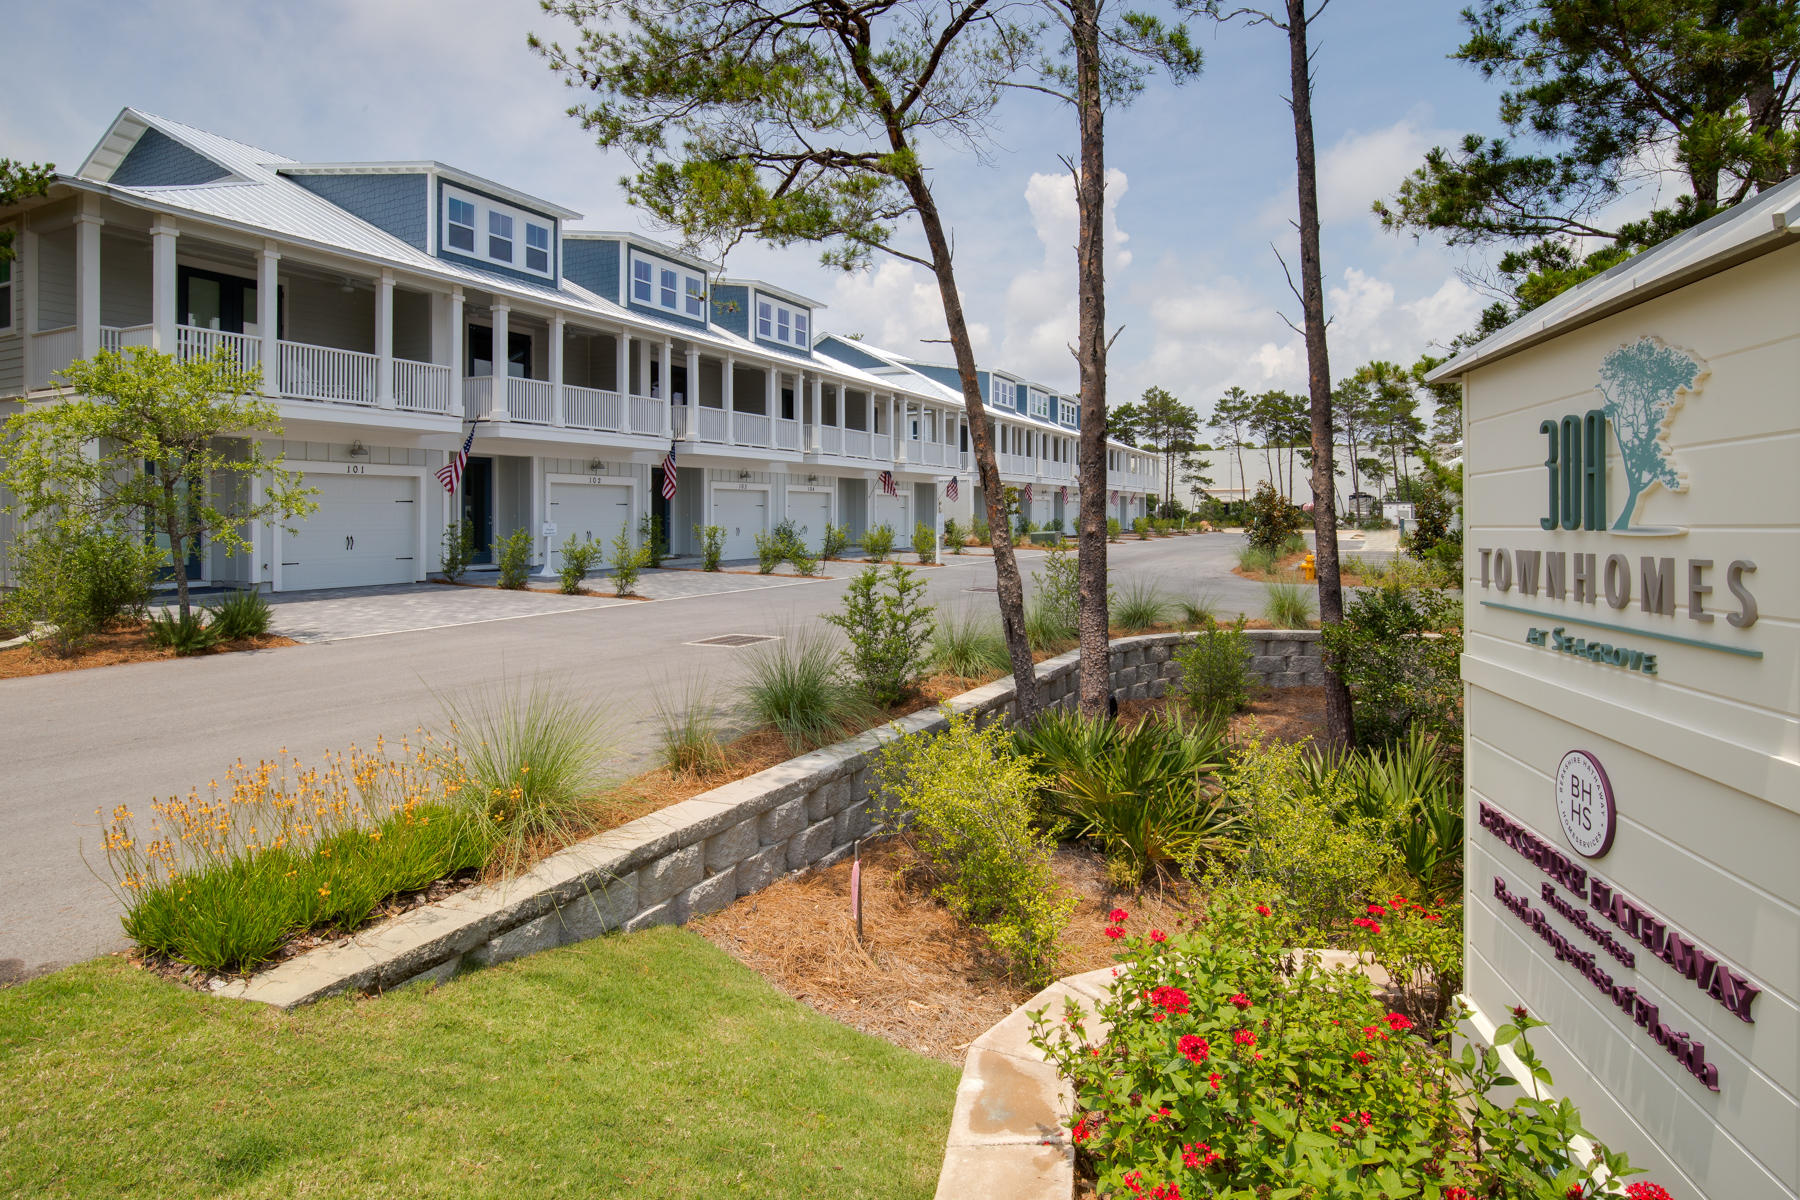 4923 County Hwy 30A,Santa Rosa Beach,Florida 32459,4 Bedrooms Bedrooms,3 BathroomsBathrooms,Attached single unit,County Hwy 30A,20131126143817002353000000